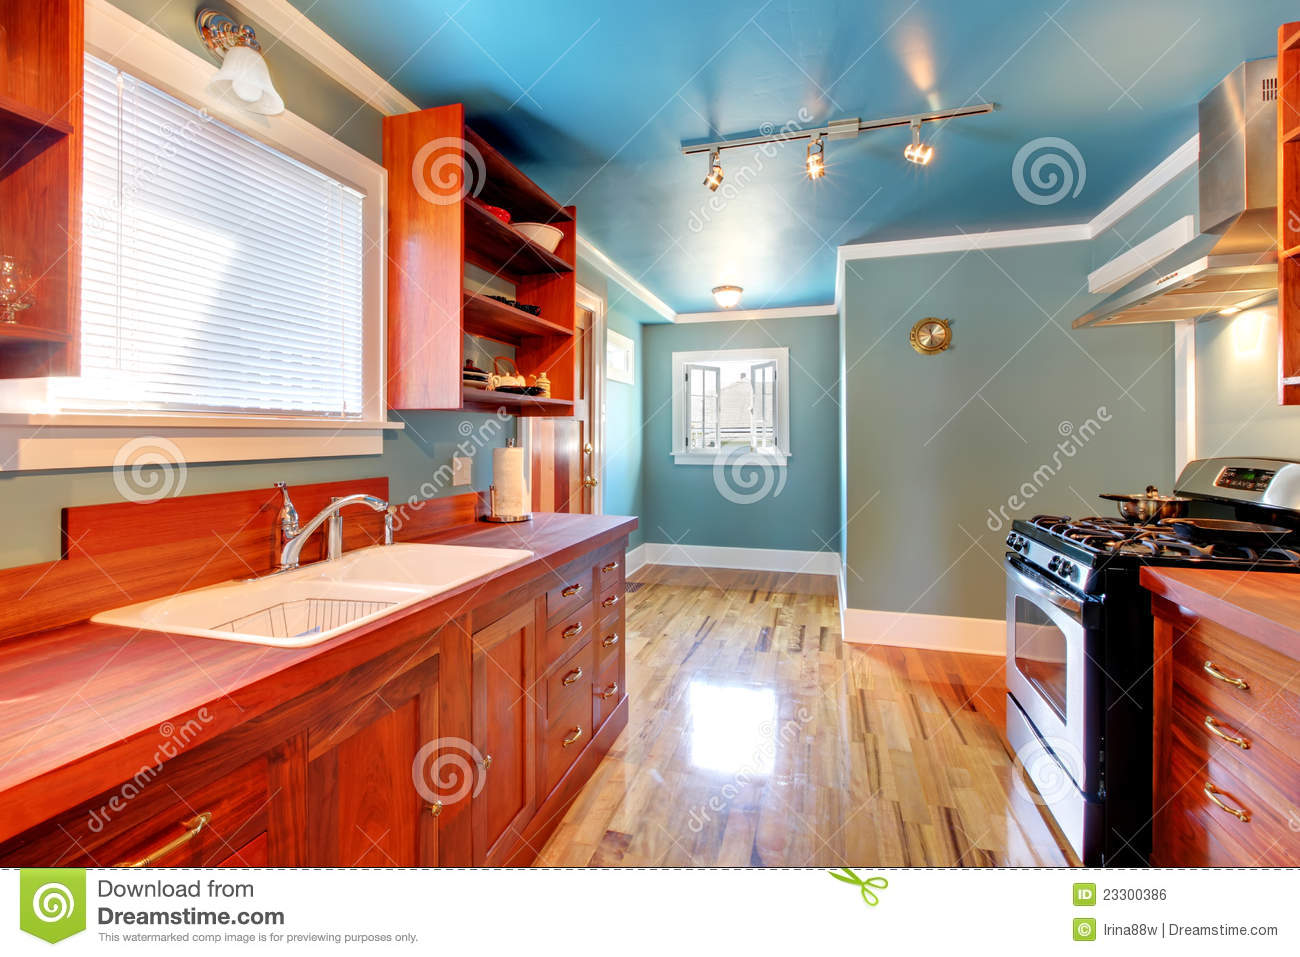 kitchen chair design plans kennedy rocking blue with cherry cabinets and shiny floor. stock photo - image: 23300386